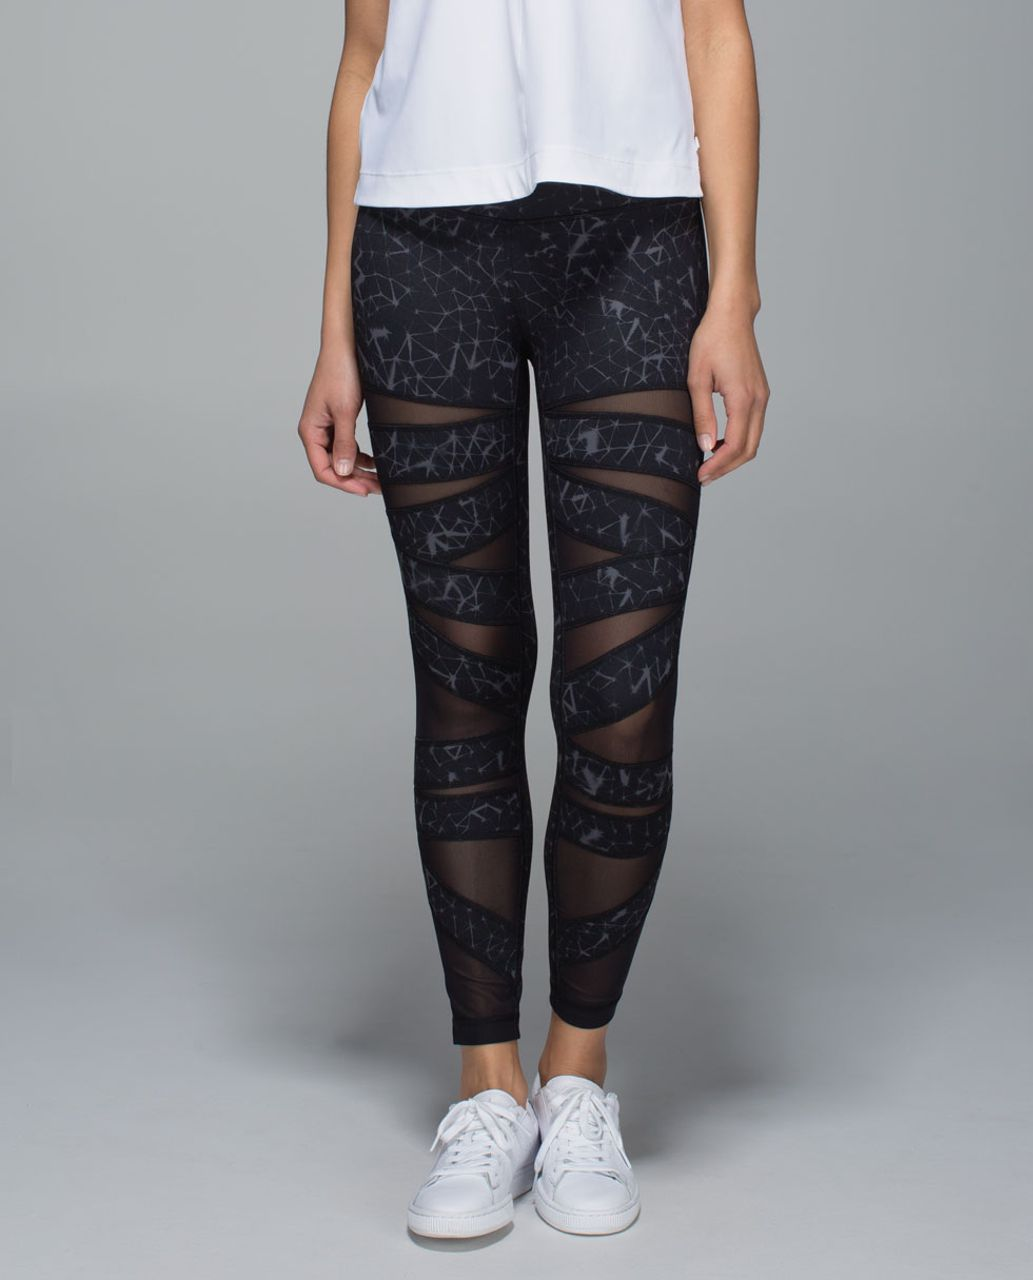 ad2726dfc Lululemon High Times Pant  Full-On Luon (Mesh) - Star Crushed Coal Black    Black - lulu fanatics